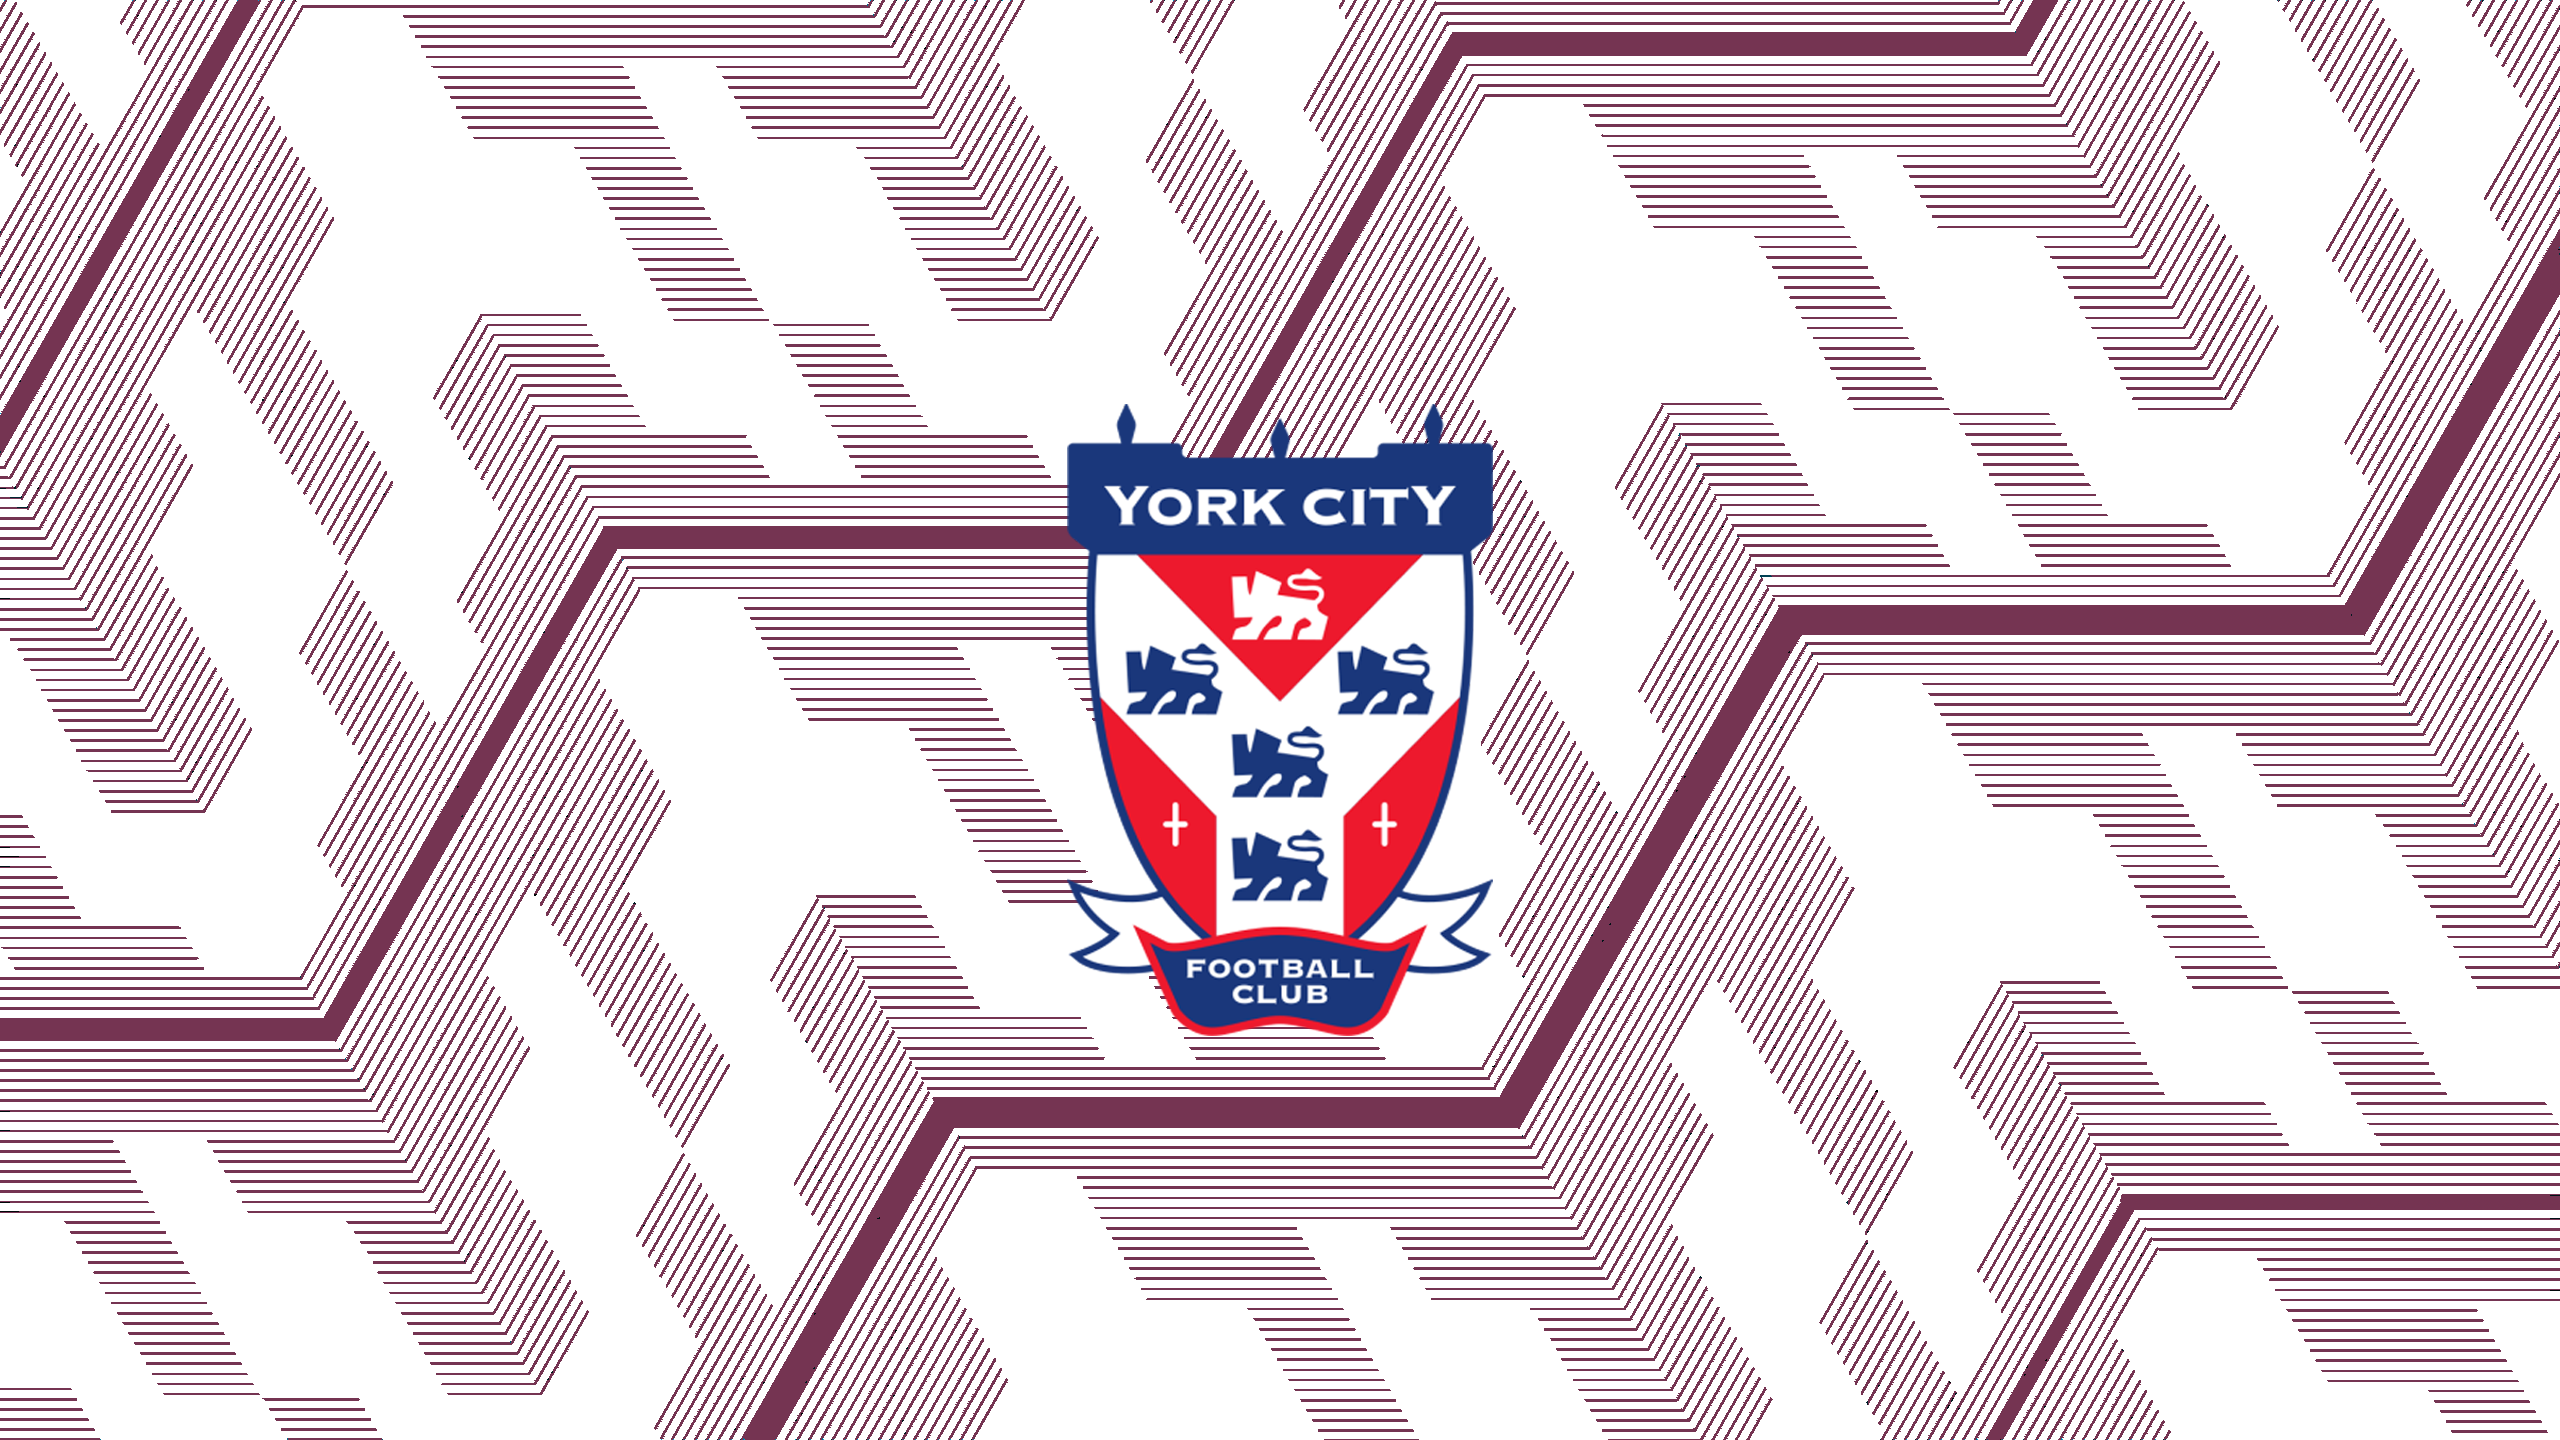 York City FC (Away)